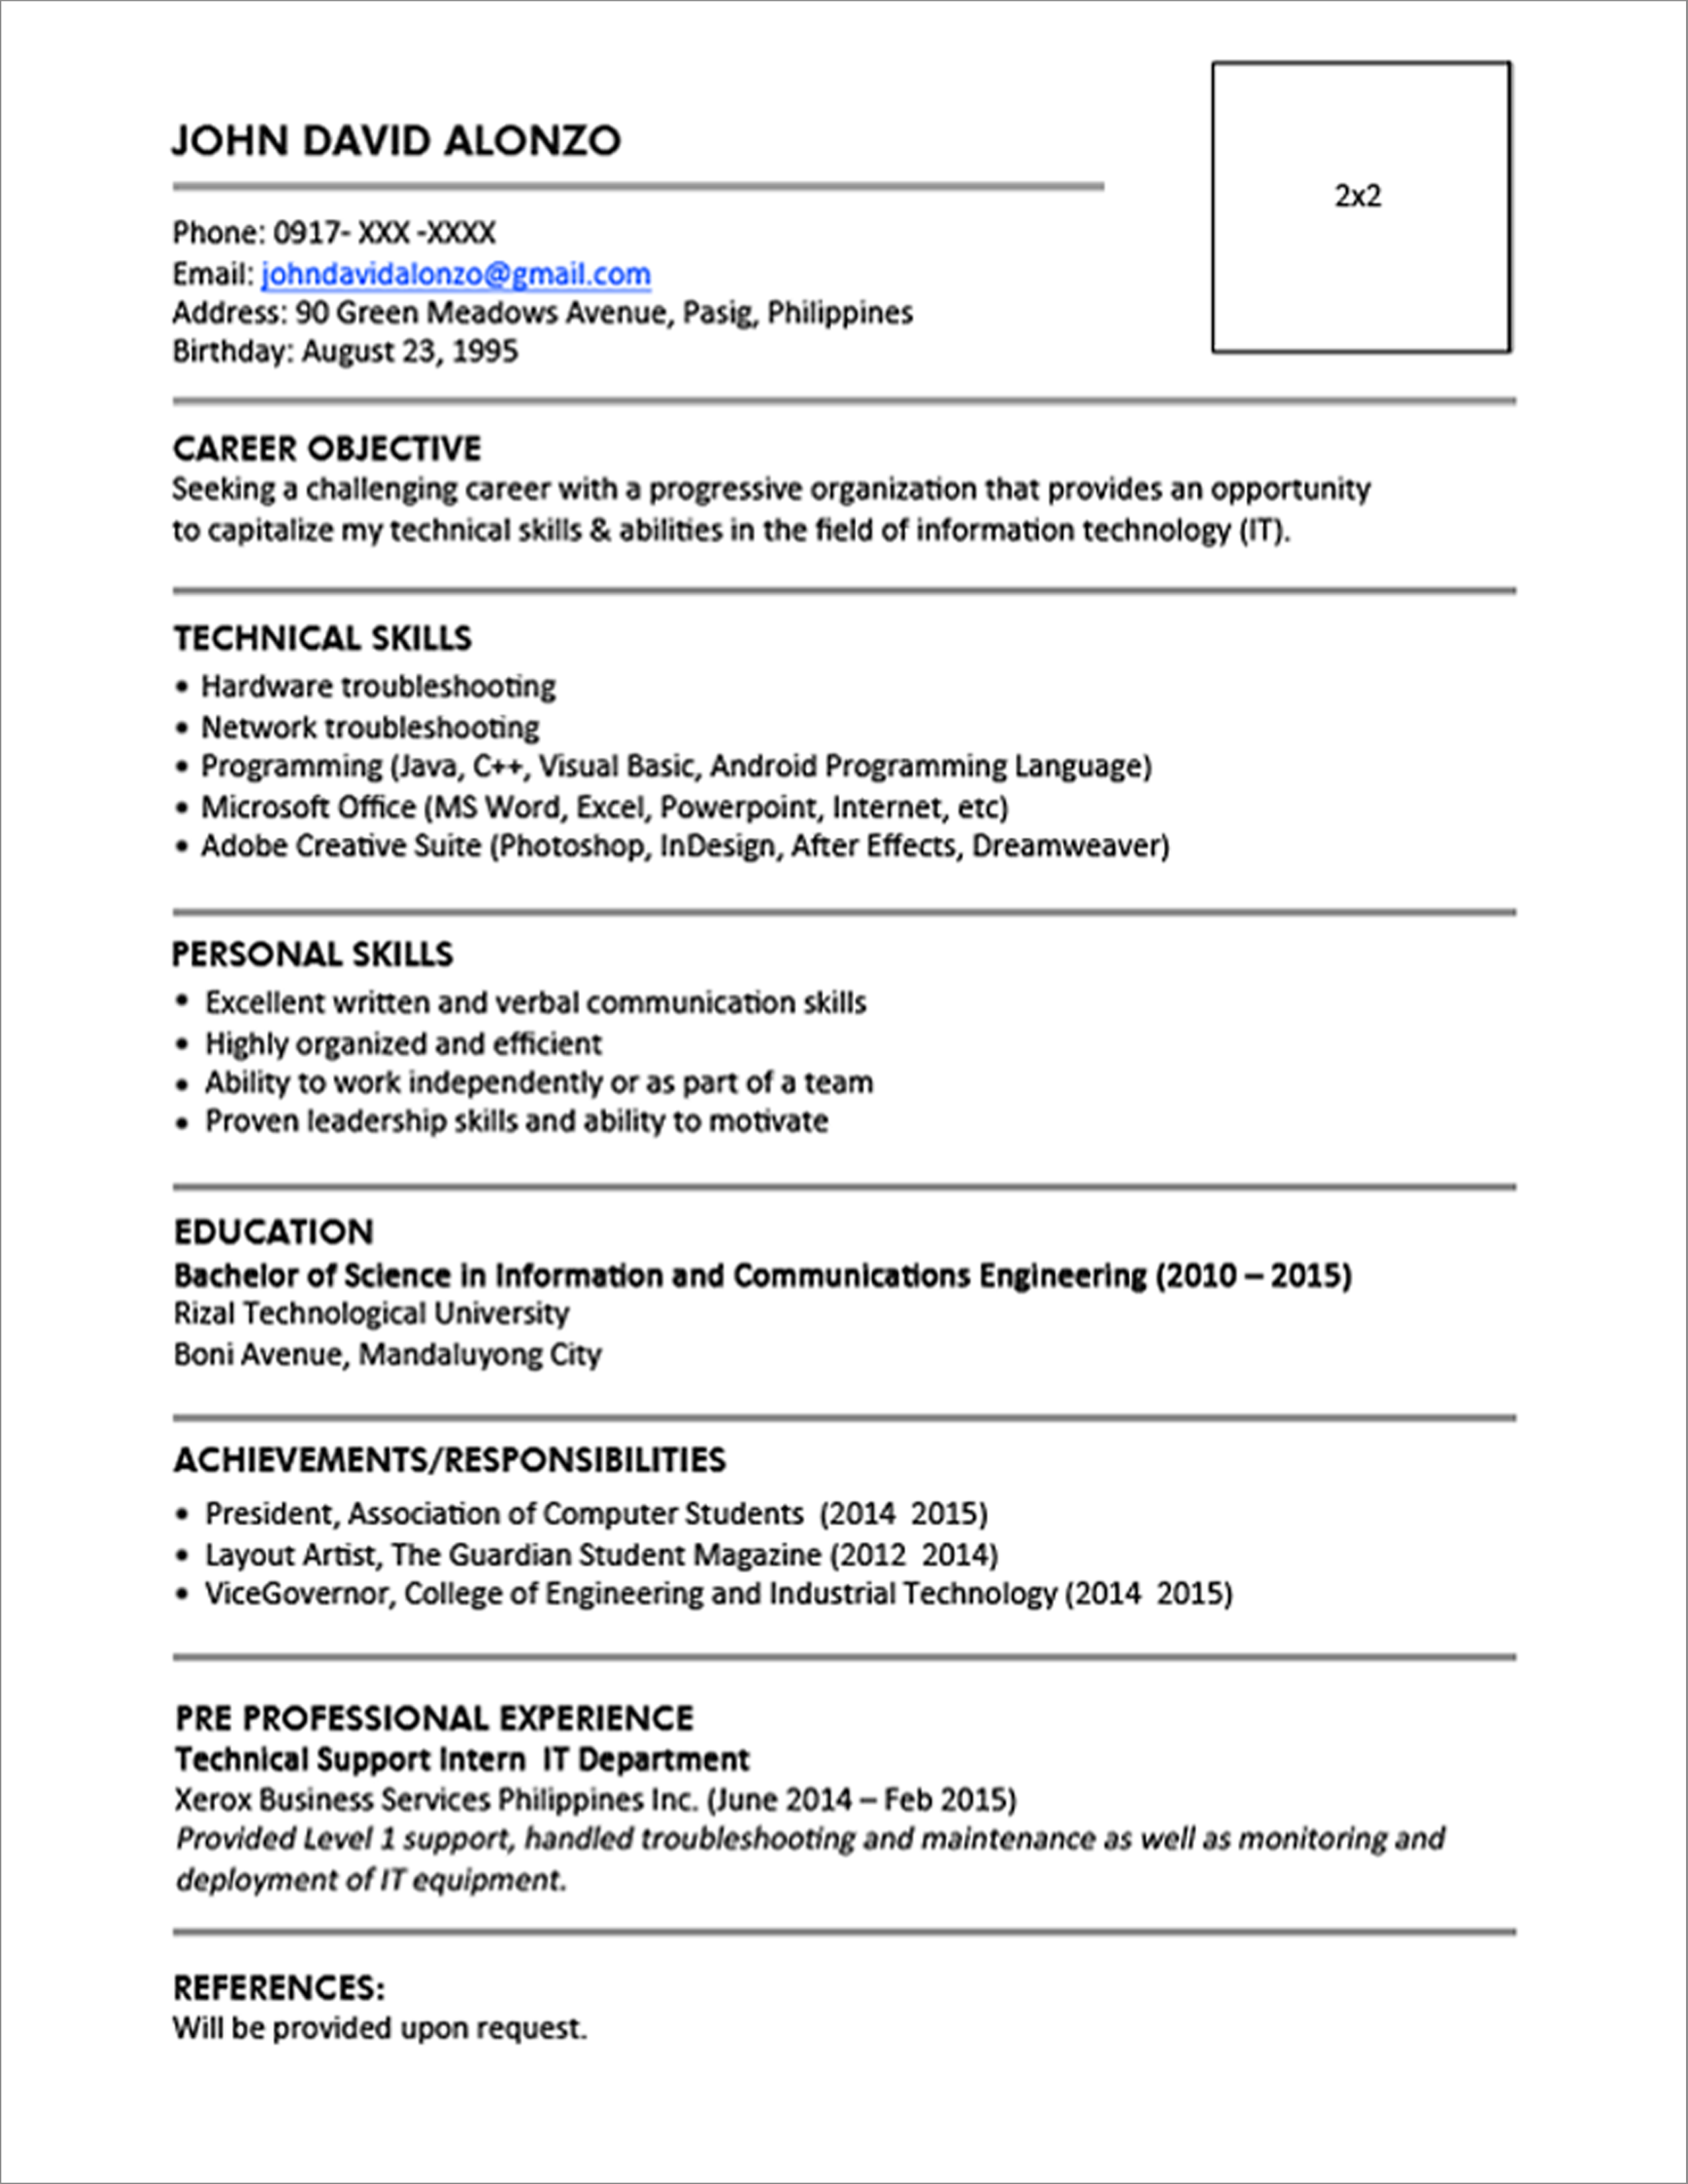 Best Resume Template Free Download Philippines Sample